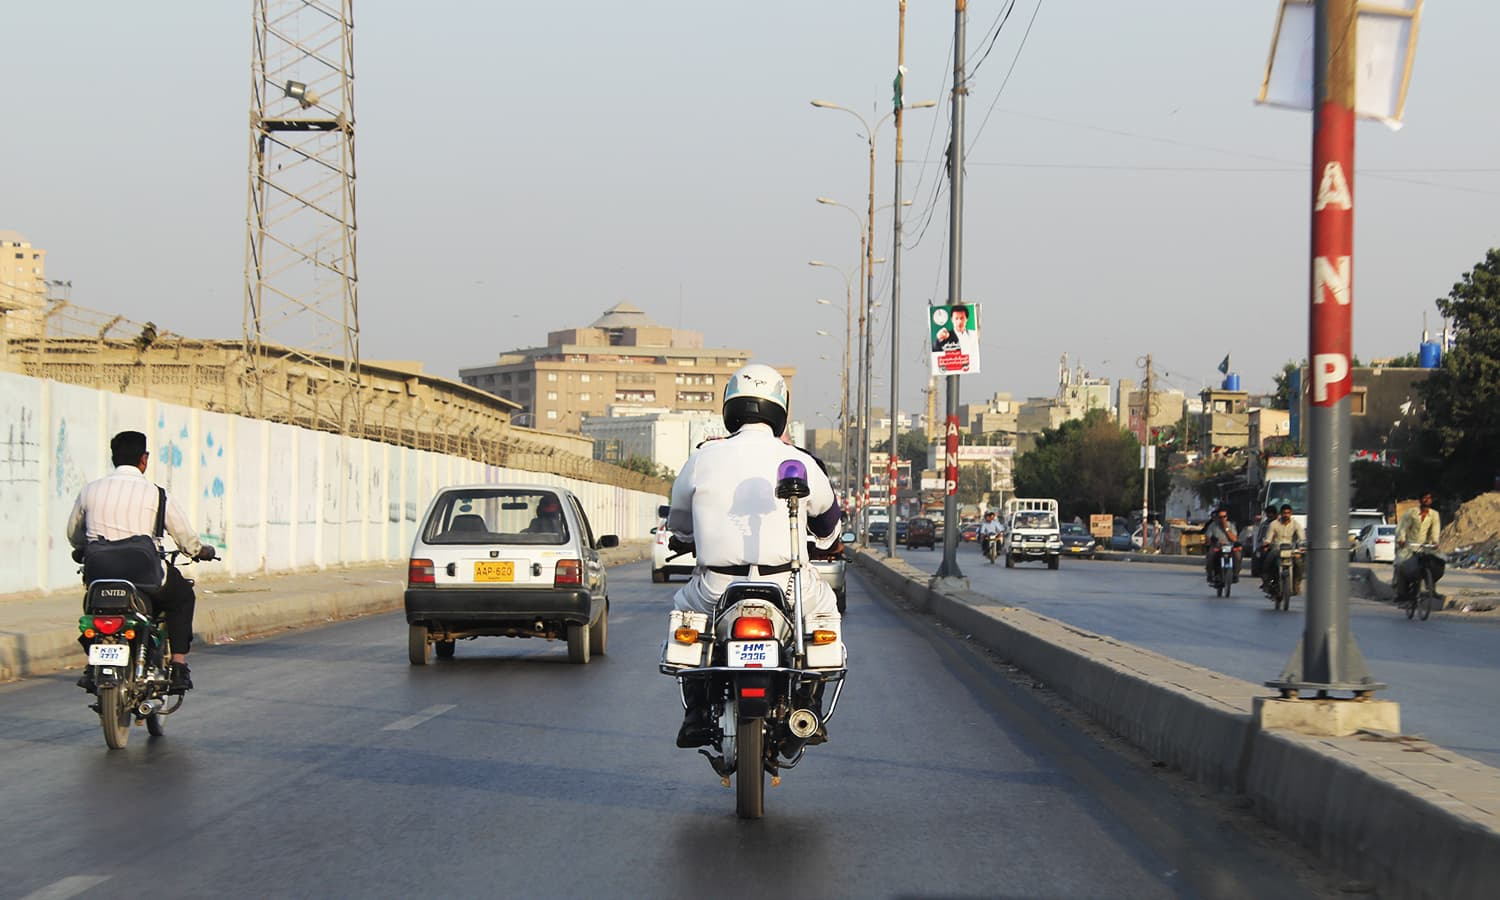 Traffic policemen patrolling on bikes receive higher pay than those on foot. ─ Photo by author